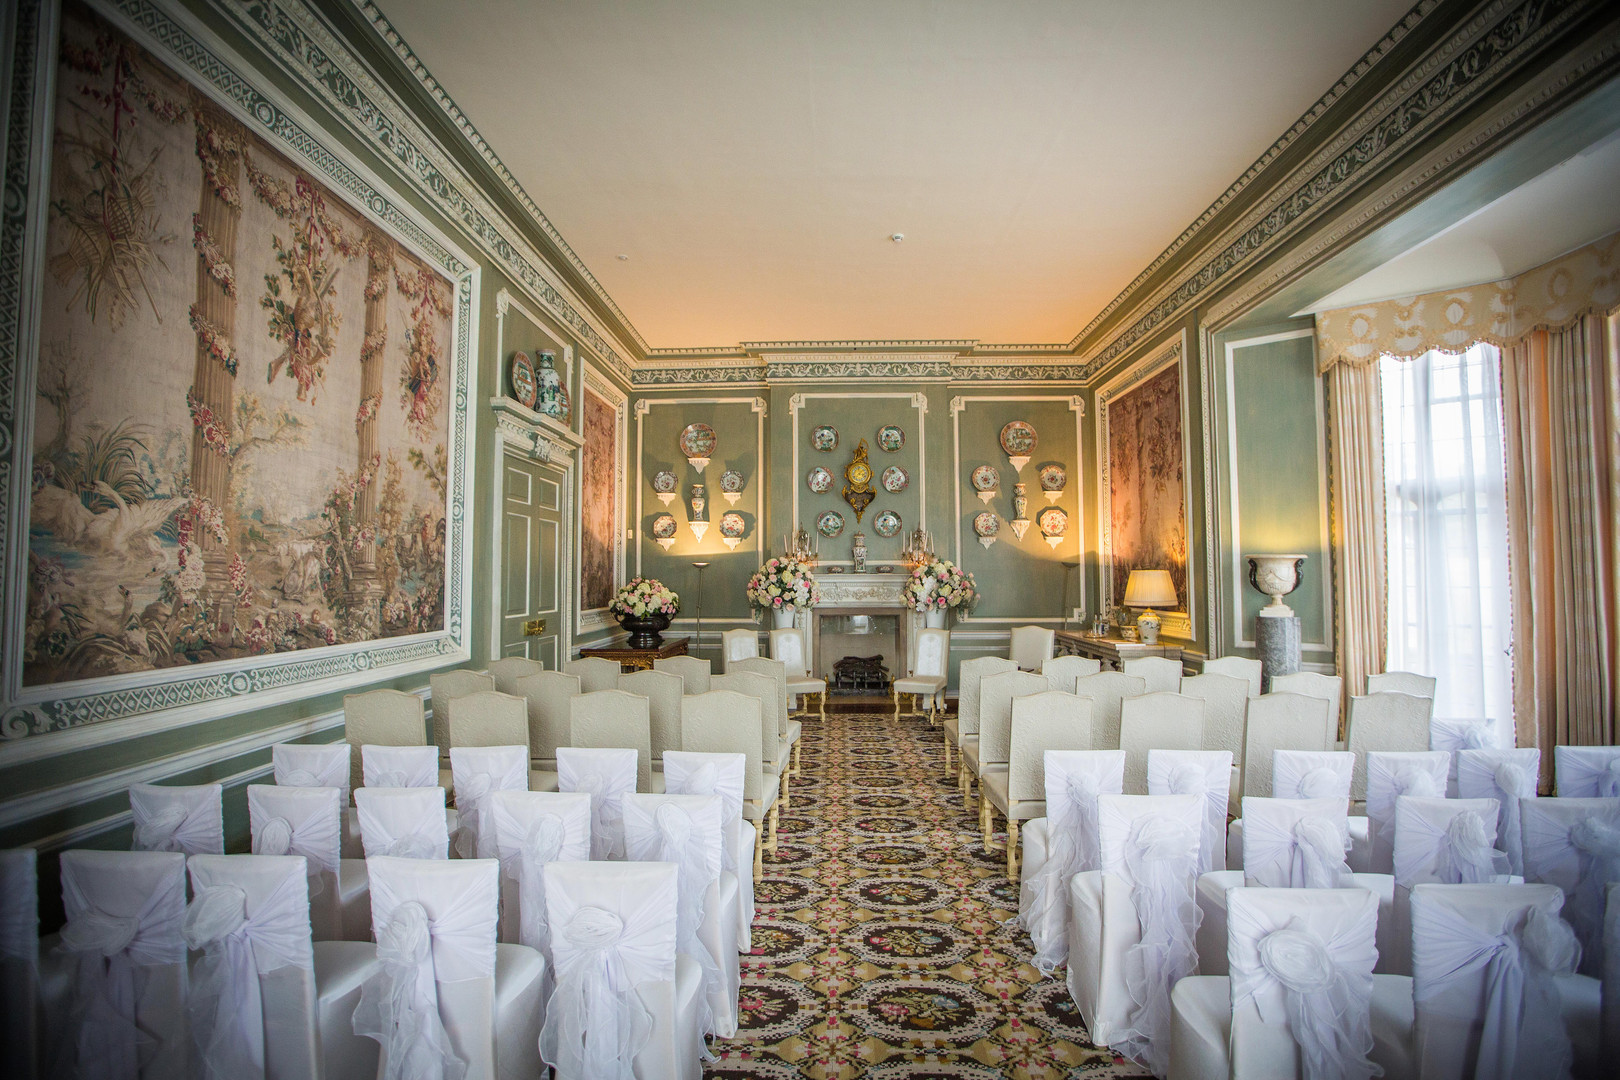 Castle Dining Room Ceremony new colour.j